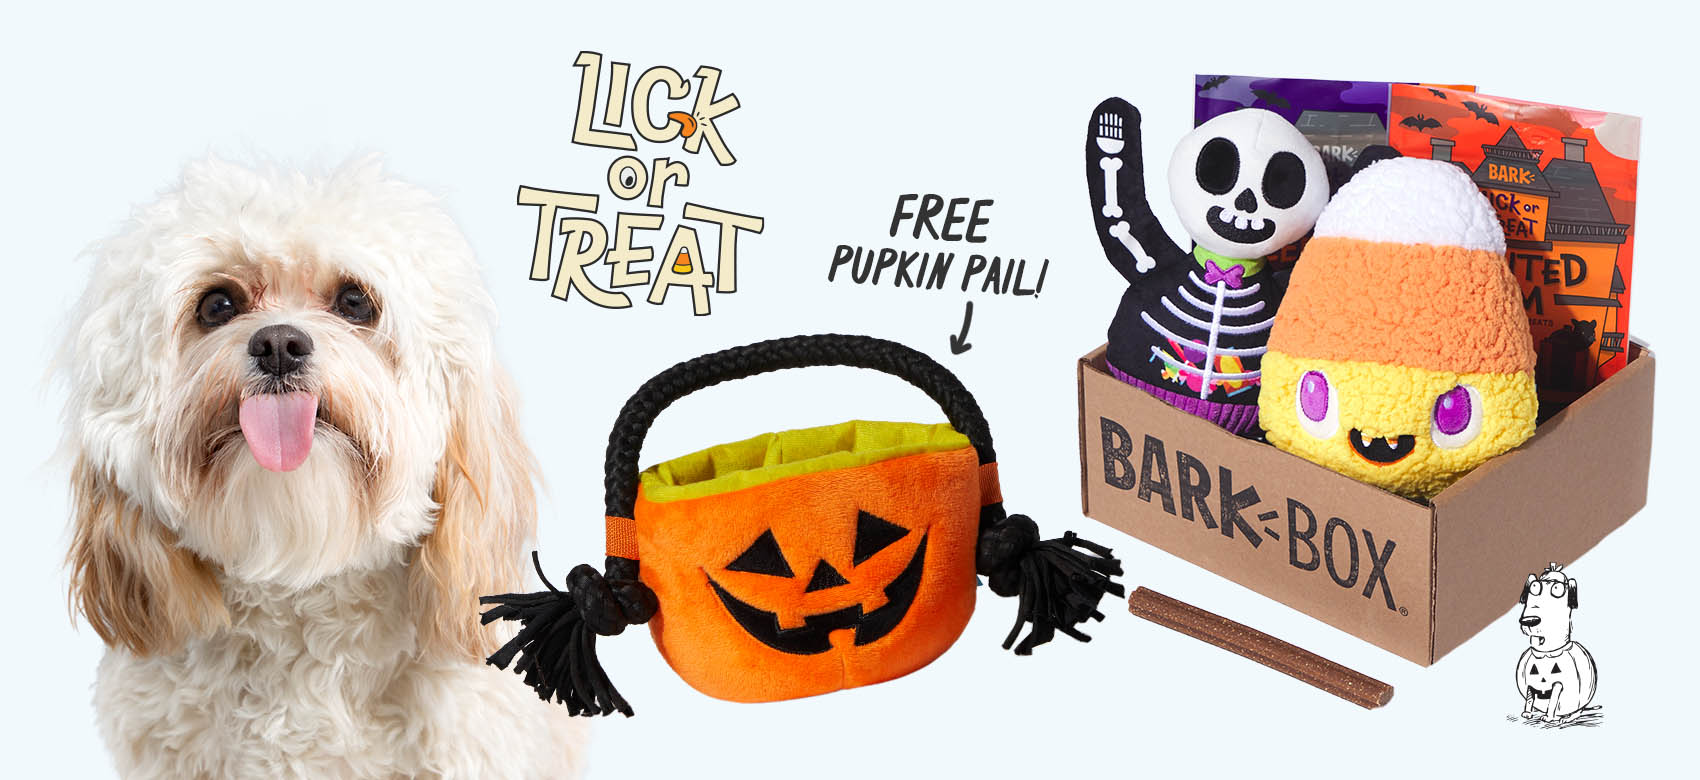 BarkBox, a monthly box of dog goodies starting at $22 per month